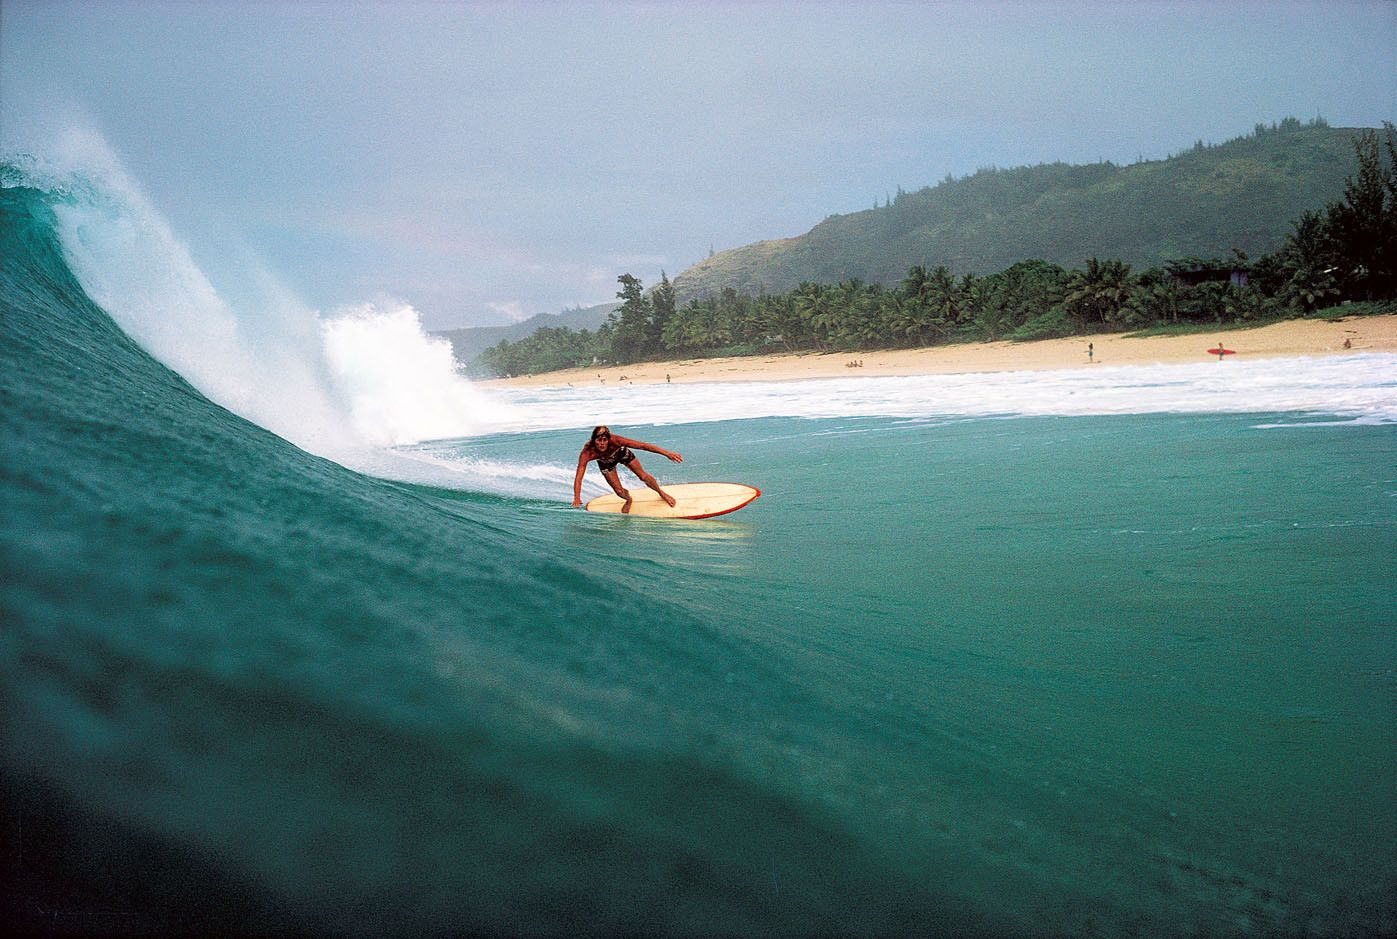 BILL LACY, BACKDOOR, PIPELINE. OAHU, HI. 1974.